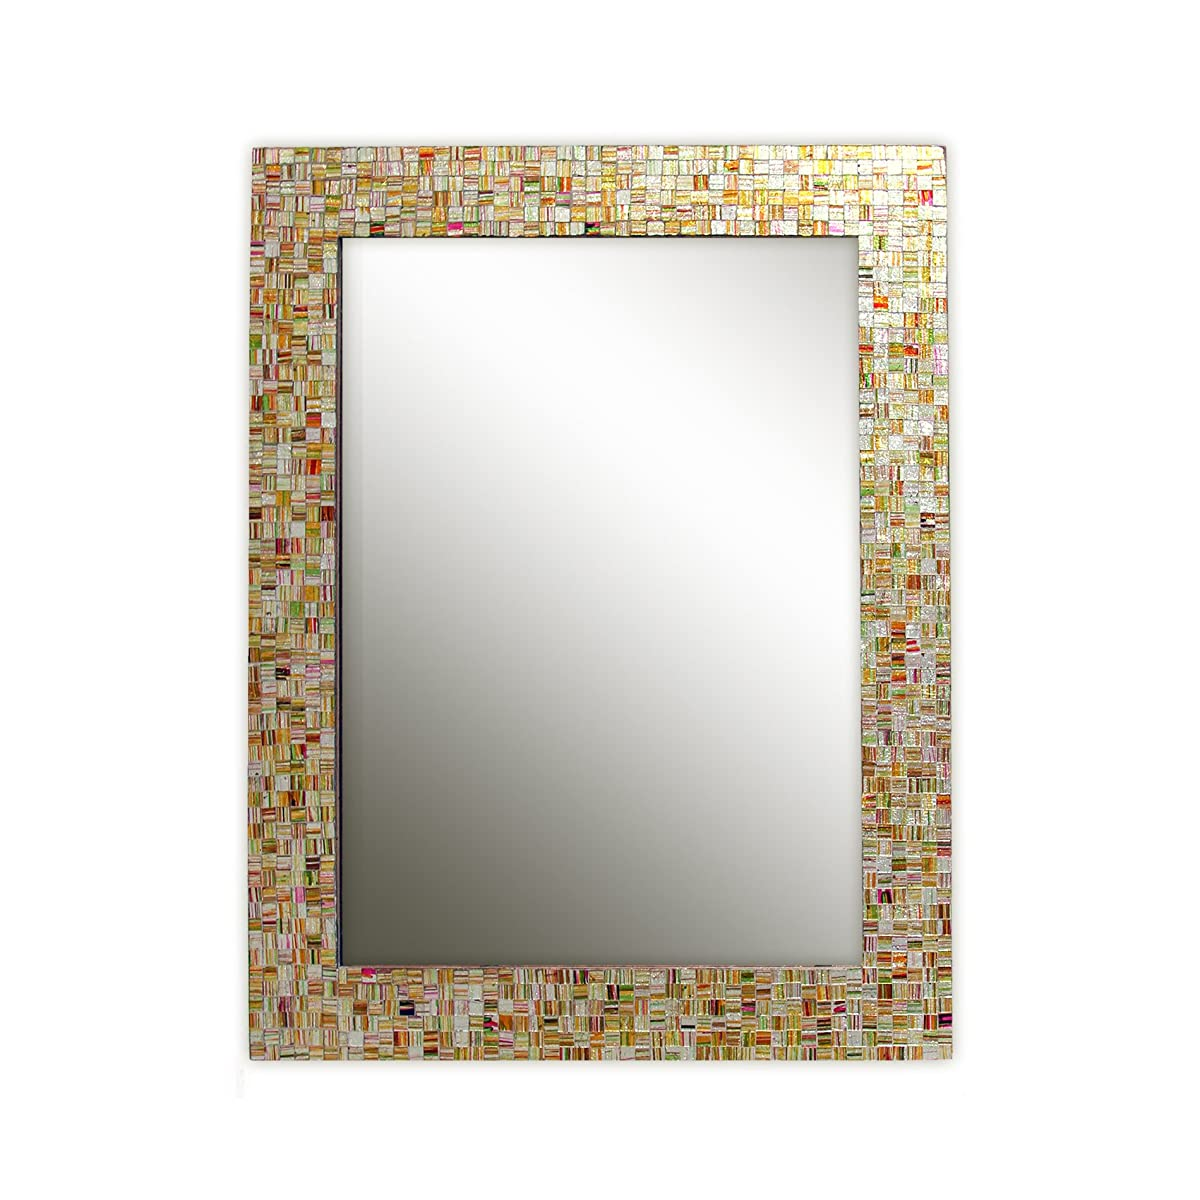 """Eclectic Bohemian Rhapsody Rainbow Mirror -Golden Striped Glass Mosaic Tile Framed Decorative Wall Mirror, Hard Candy Look Bright Colors, Wall Mountable, 30"""" x 24"""" Rectangle Framed Mirror"""